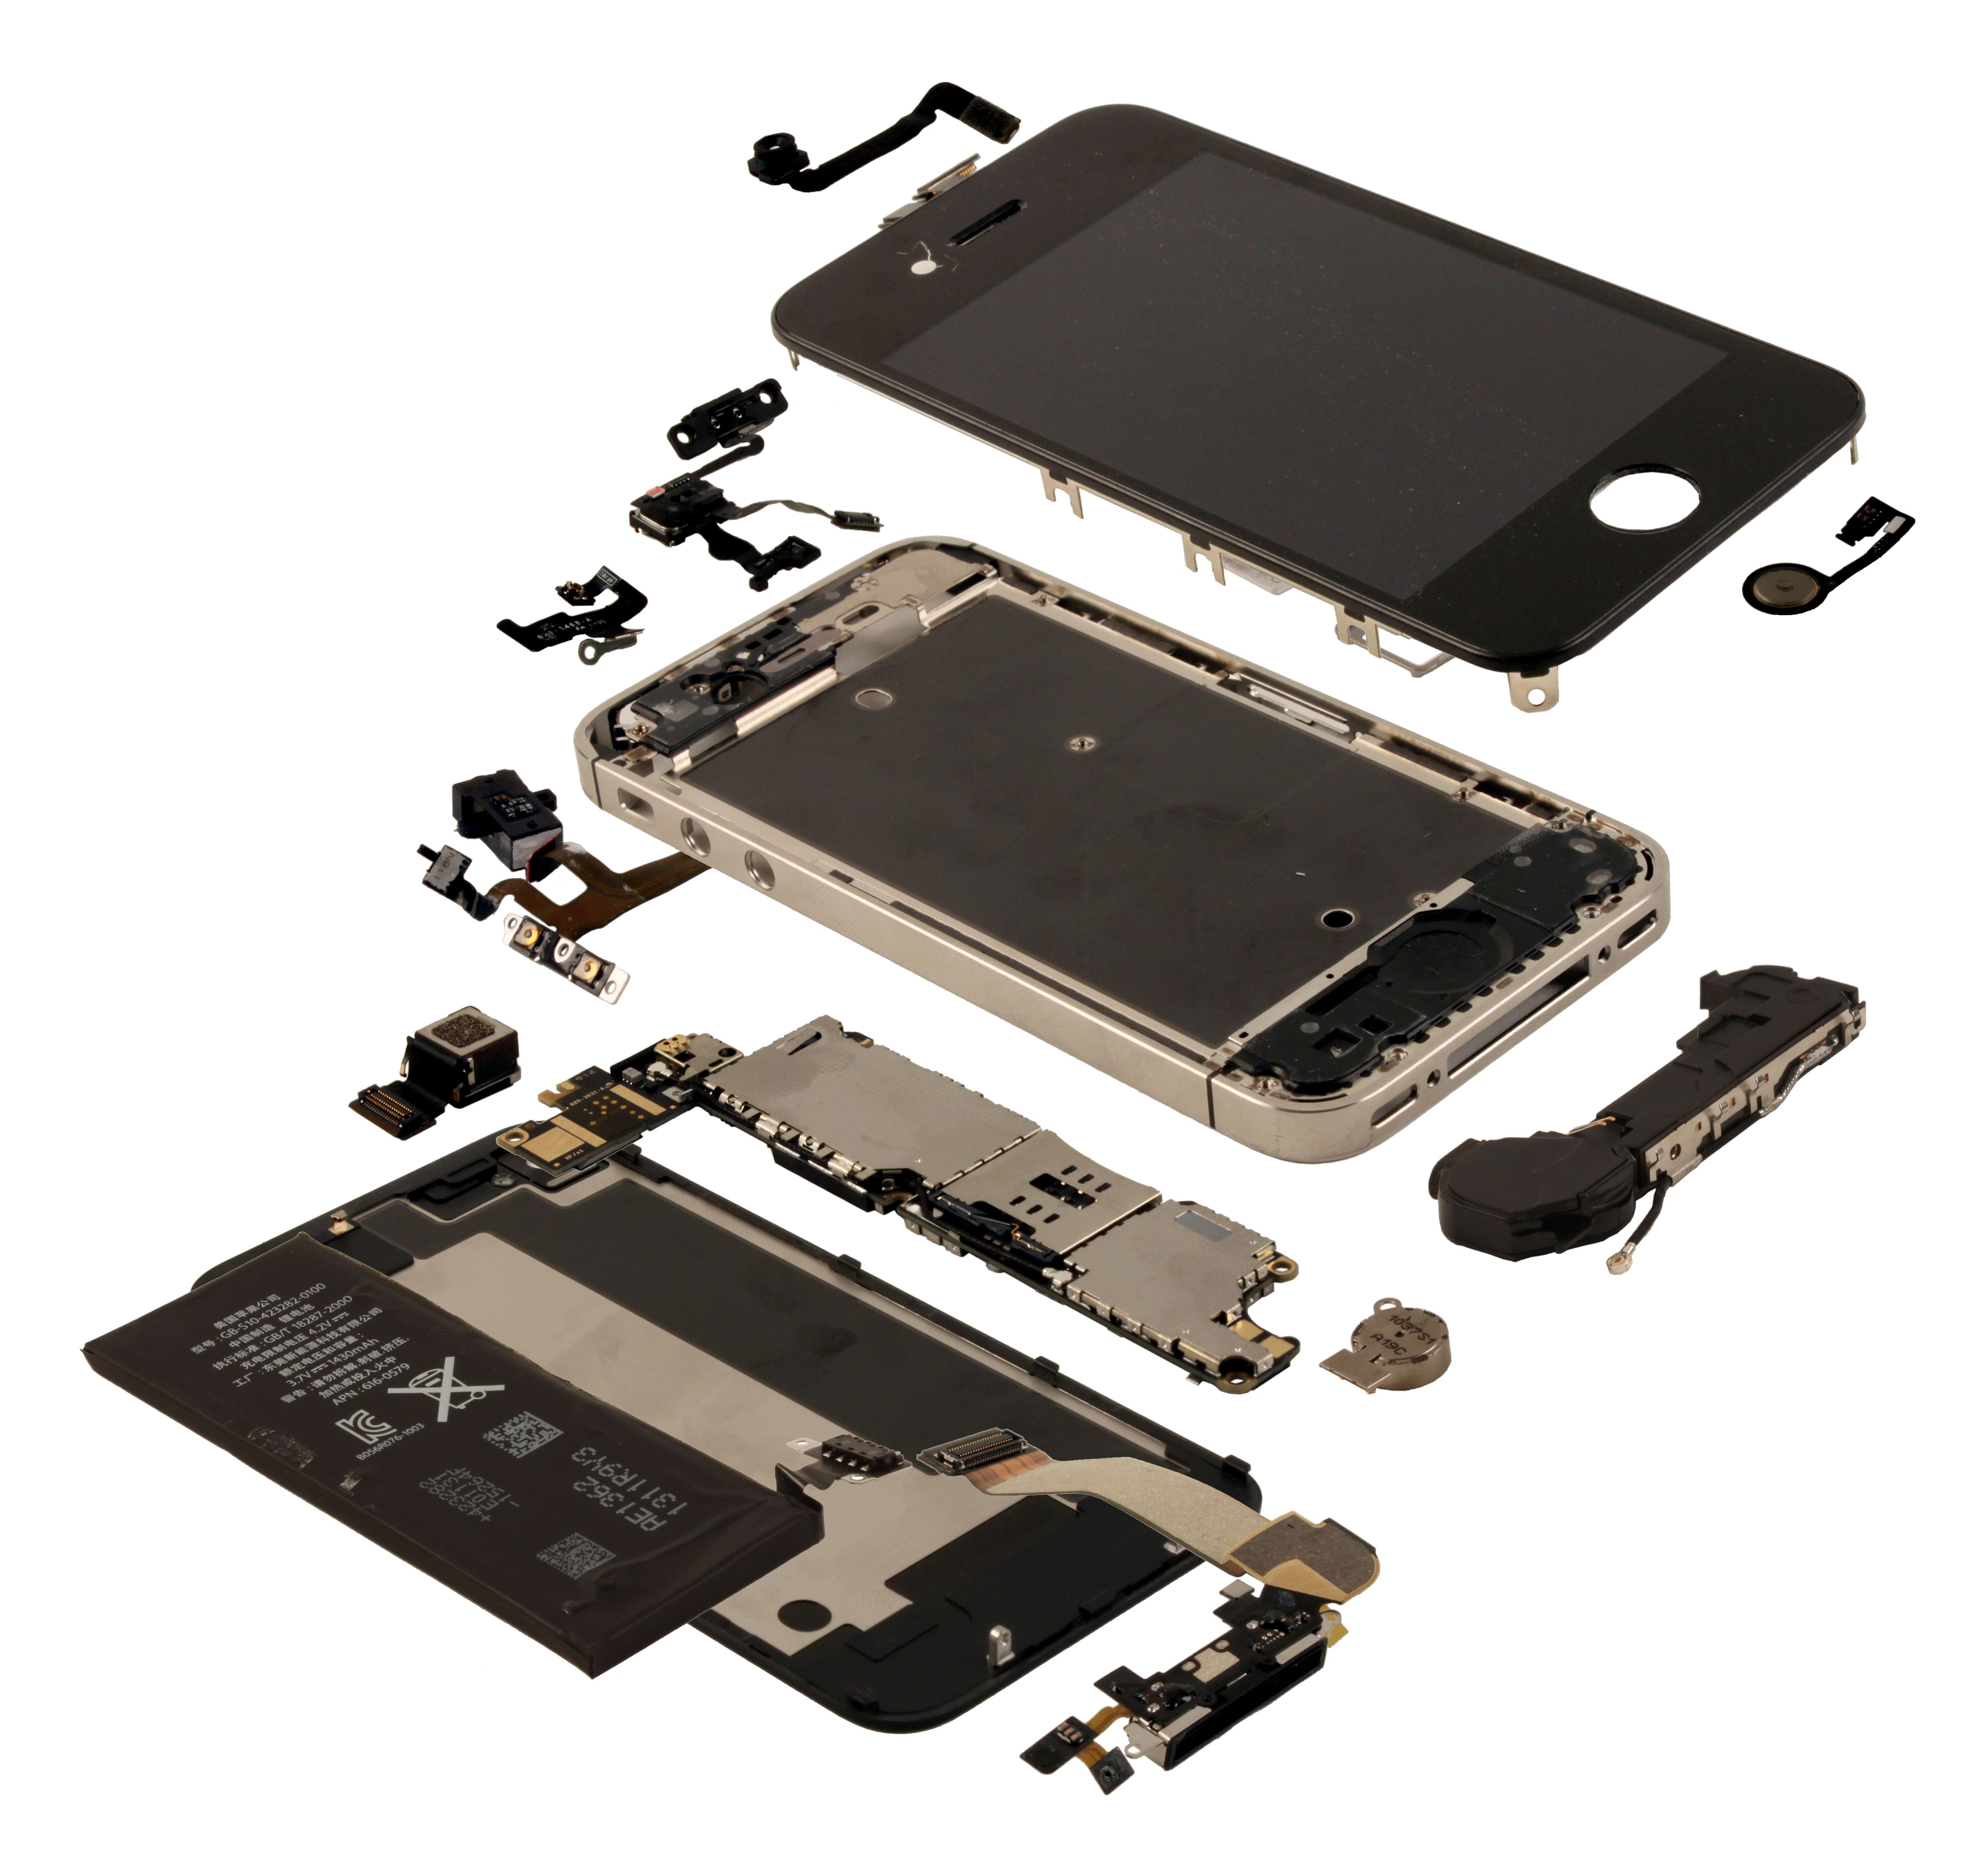 IHS iSuppli Teardown Analysis - Apple iPhone 4S